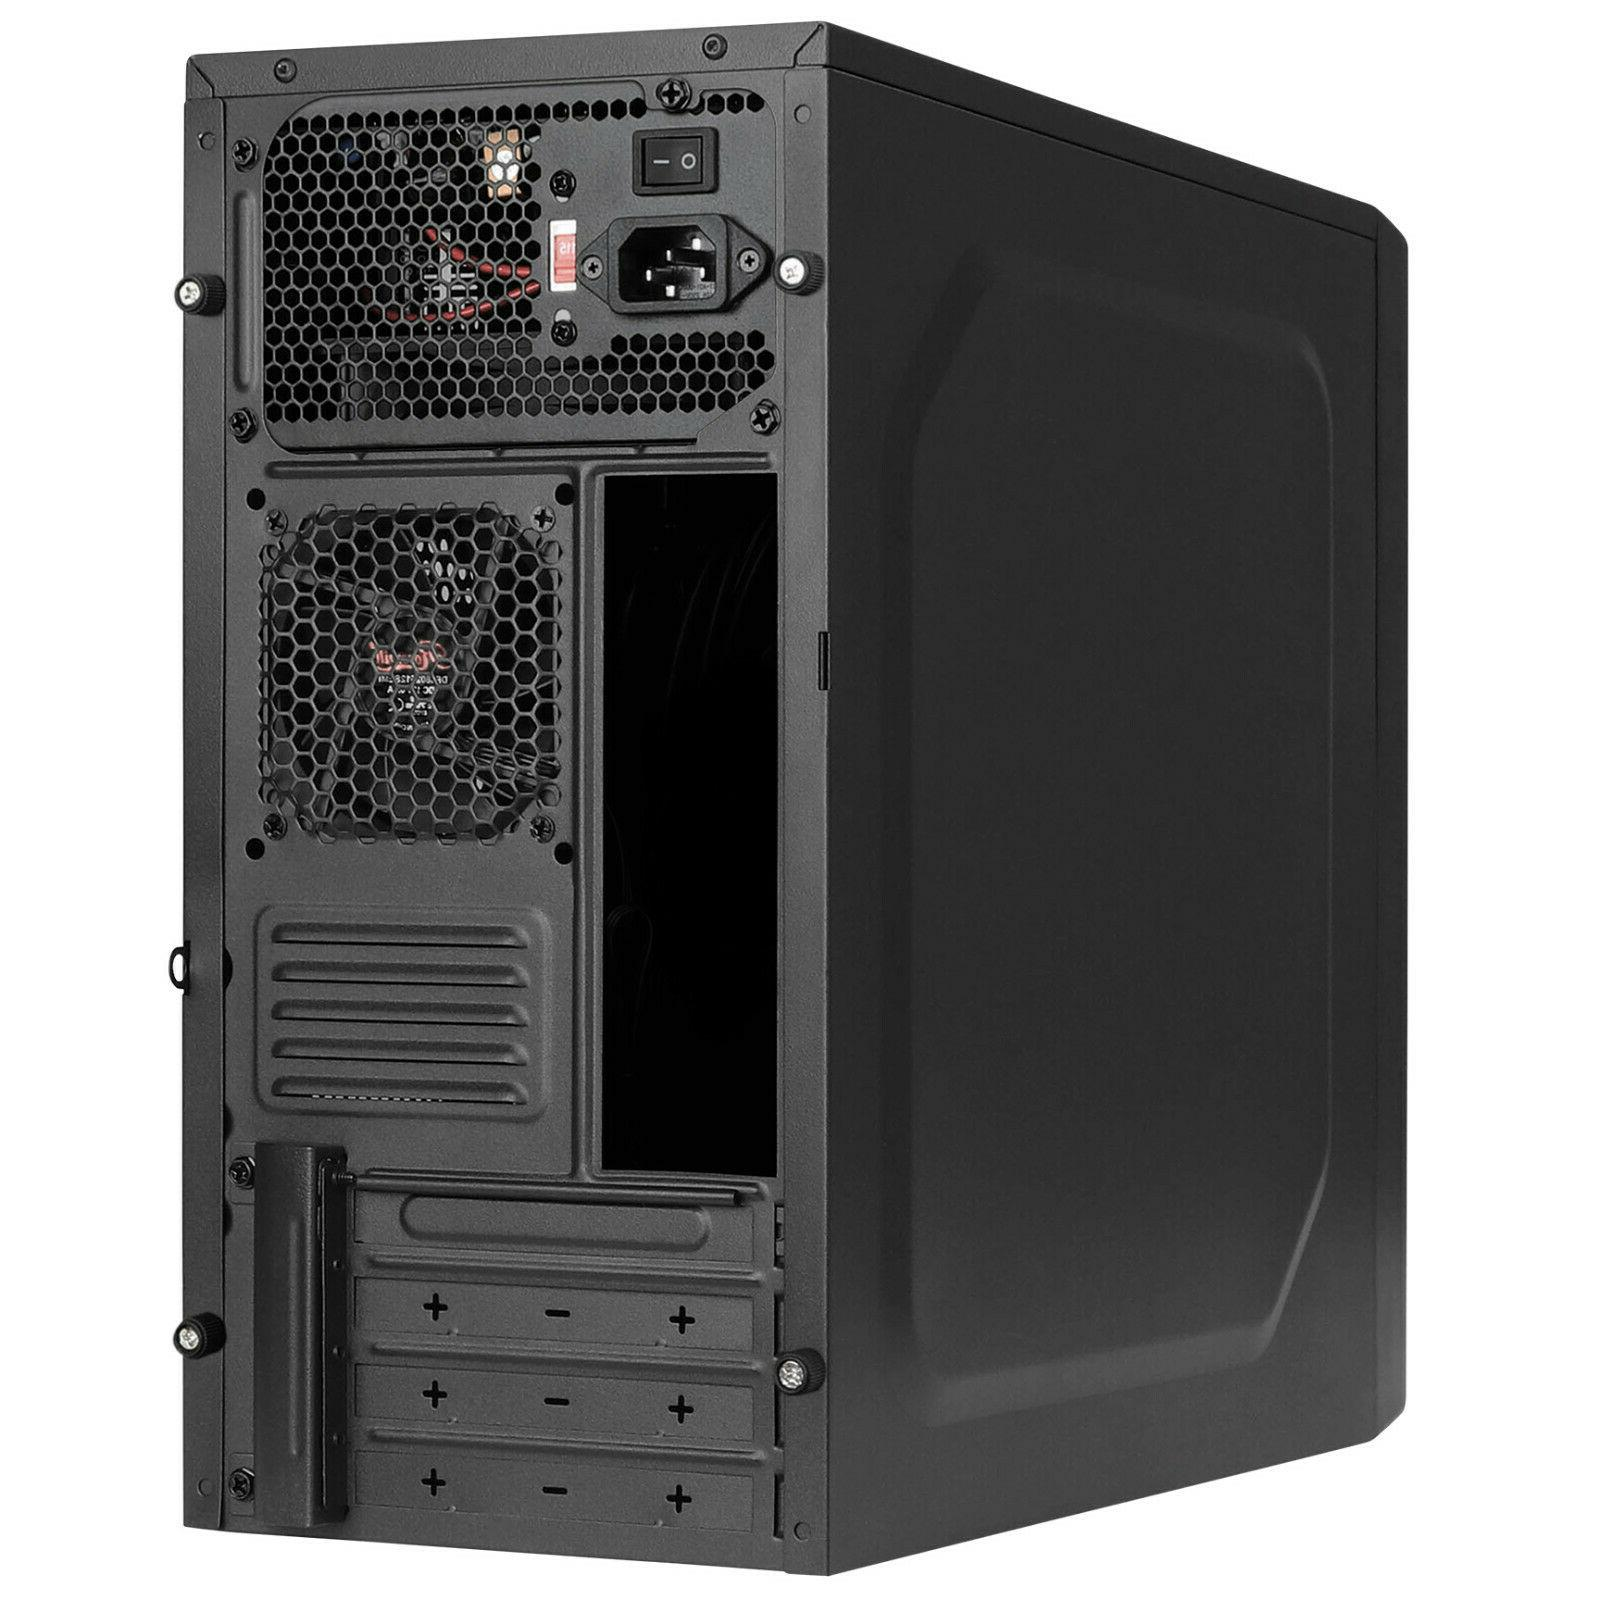 Rosewill Case Desktop PC with 450W USB